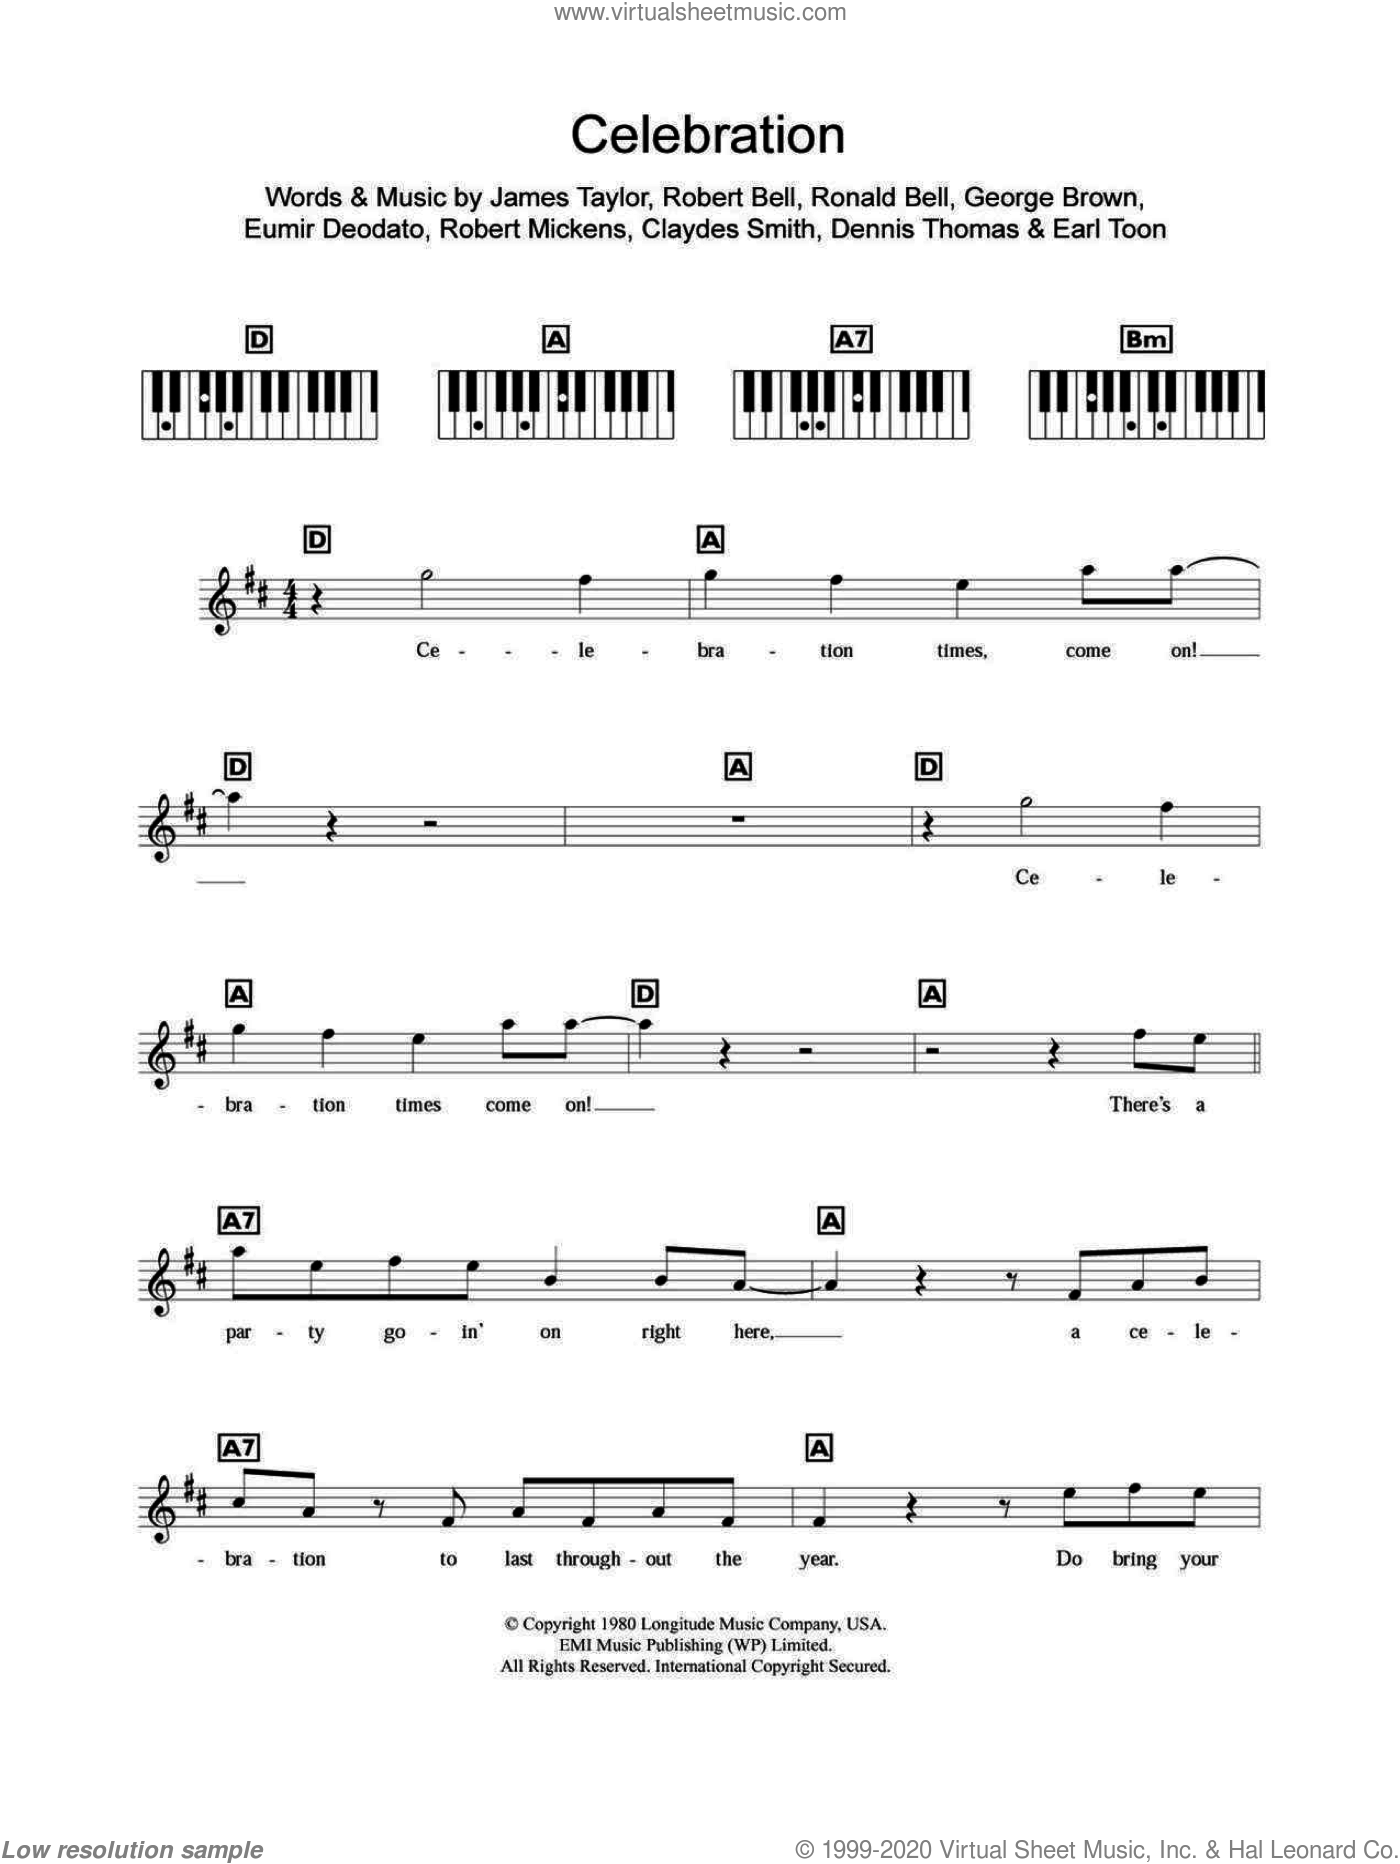 Celebration sheet music for piano solo (chords, lyrics, melody) by Ronald Bell, Kool And The Gang, Claydes Smith, Dennis Thomas, Earl Toon, Eumir Deodato, George Brown, James Taylor, Robert Bell and Robert Mickens